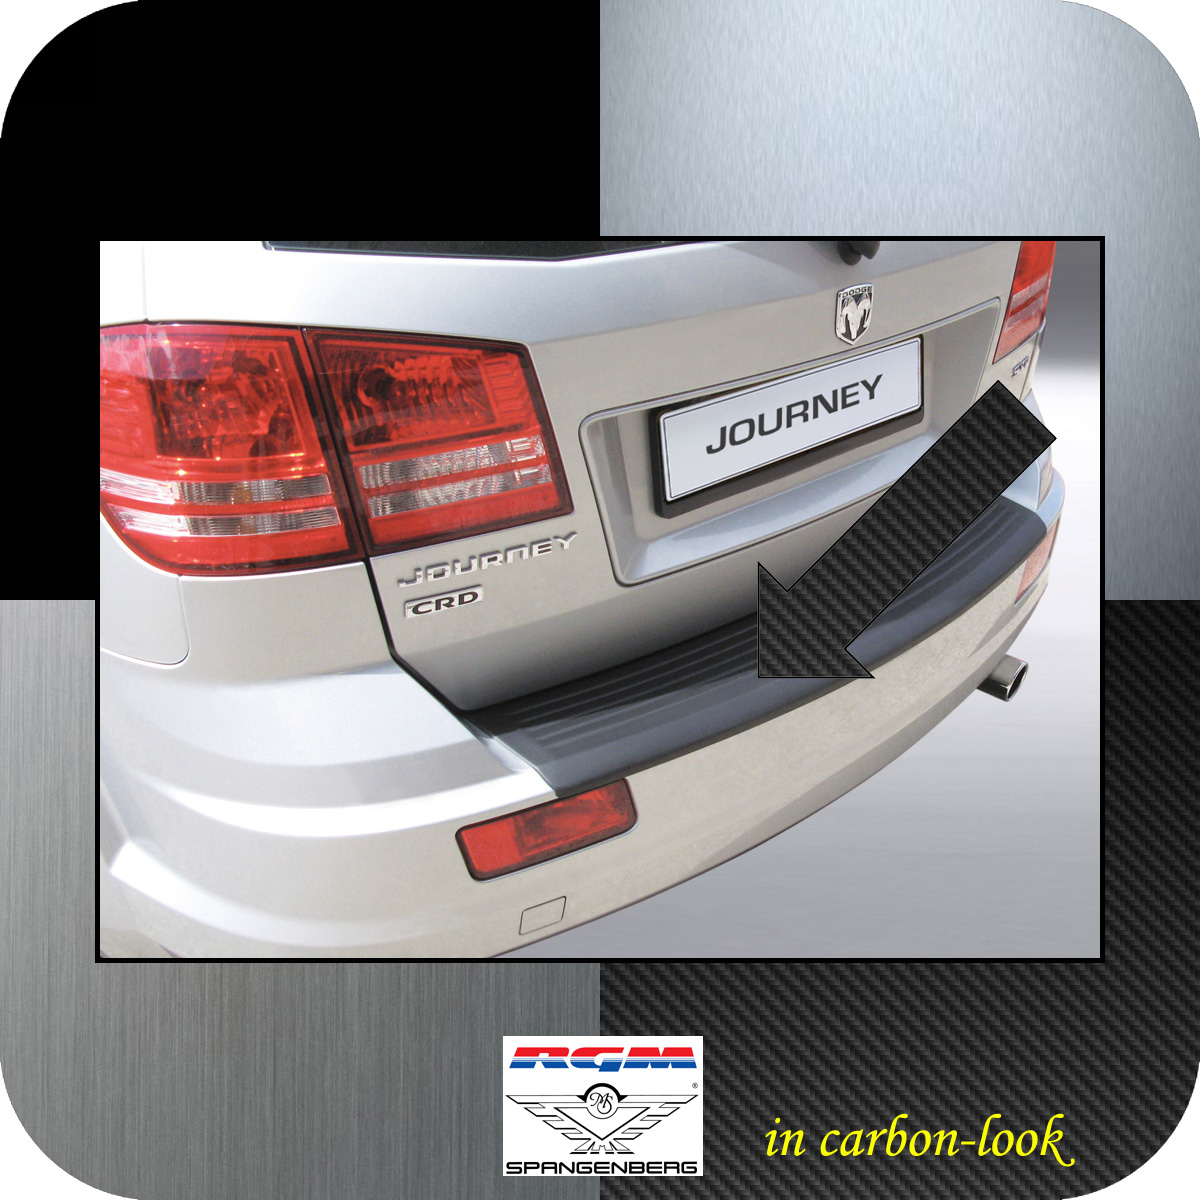 Ladekantenschutz Carbon-Look Dodge Journey SUV ab facelift Baujahr 2011- 3509562